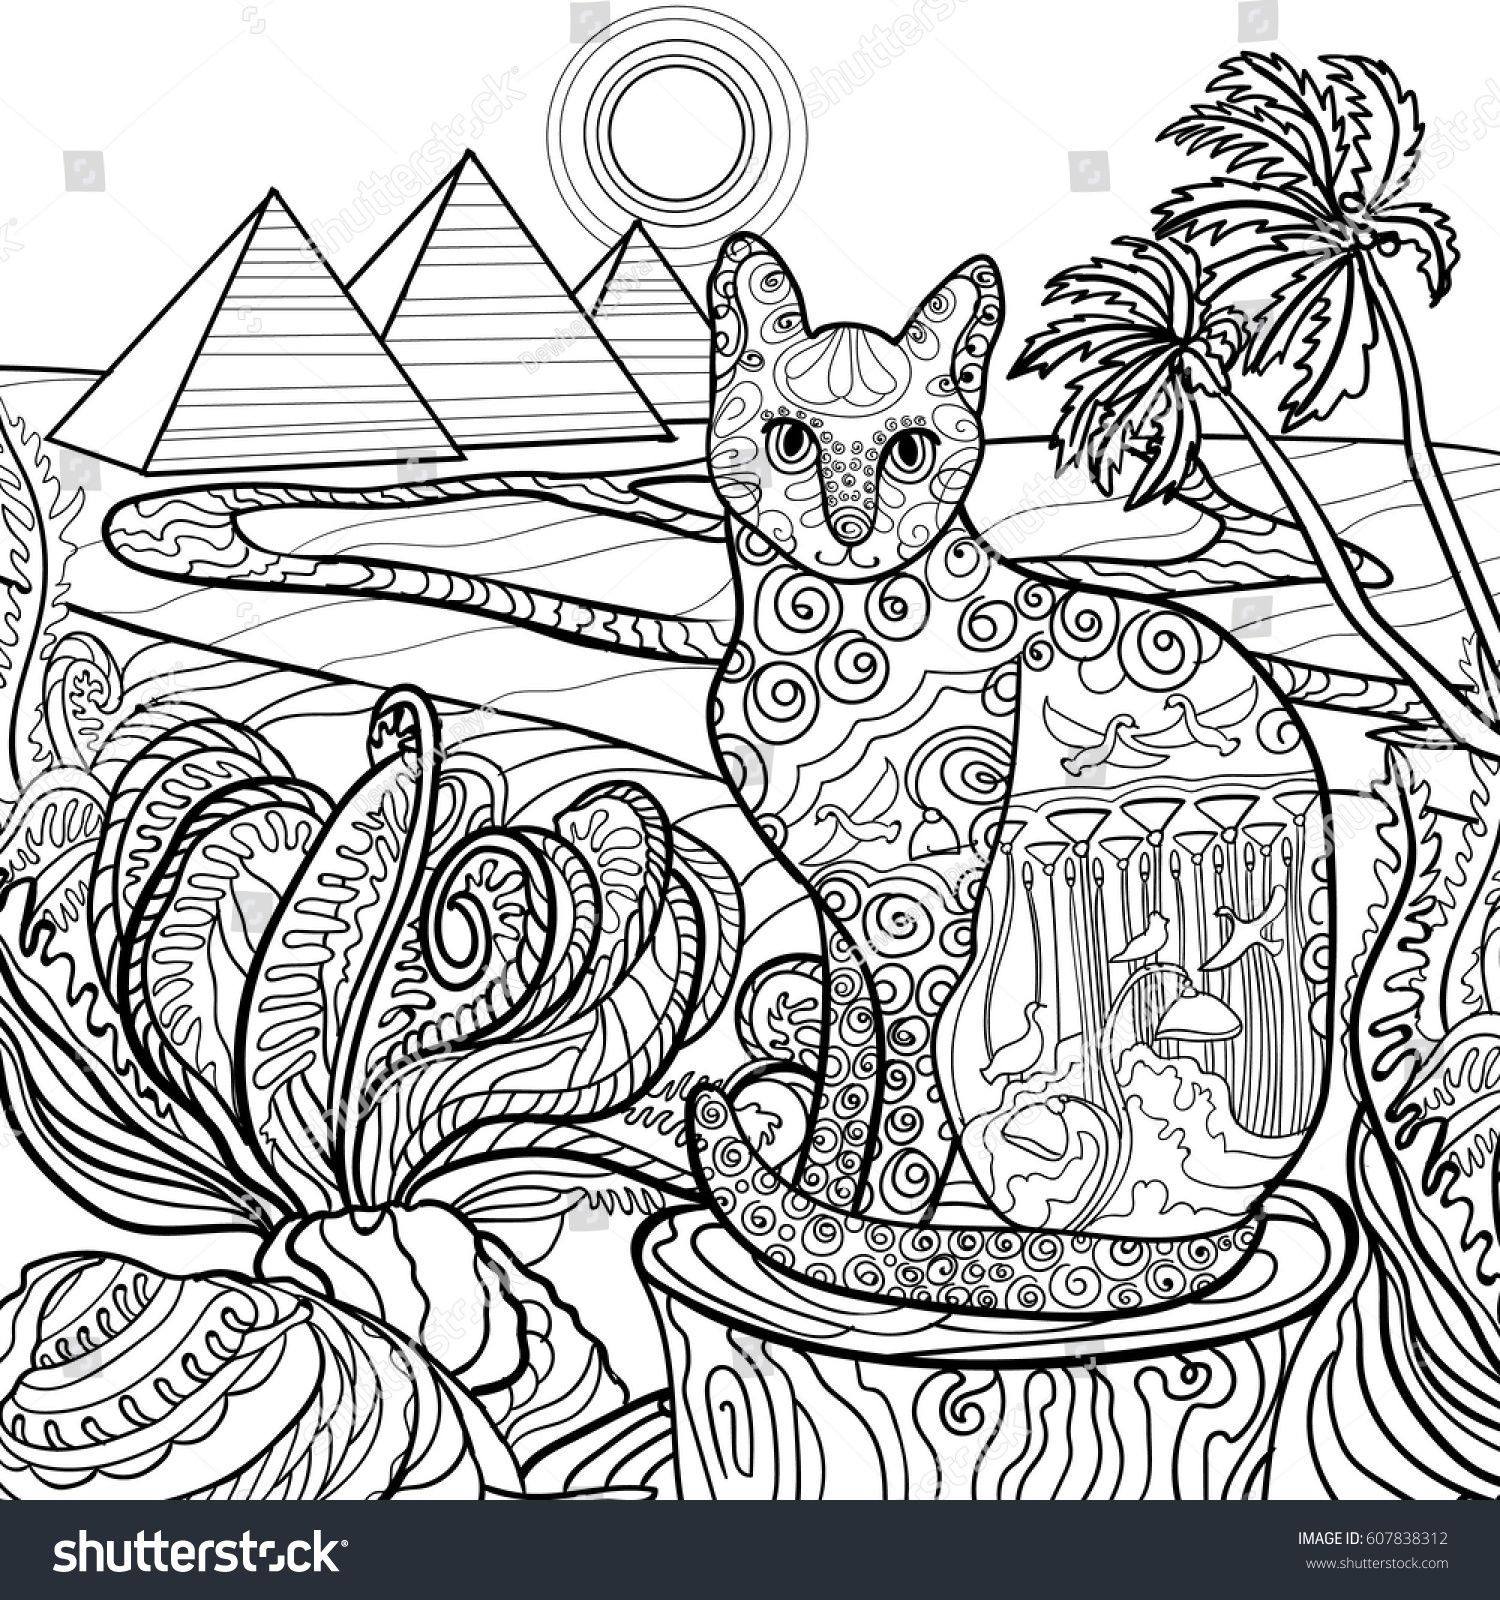 Outline Cat Coloring Page Design In Egypt Style Vintage Hand